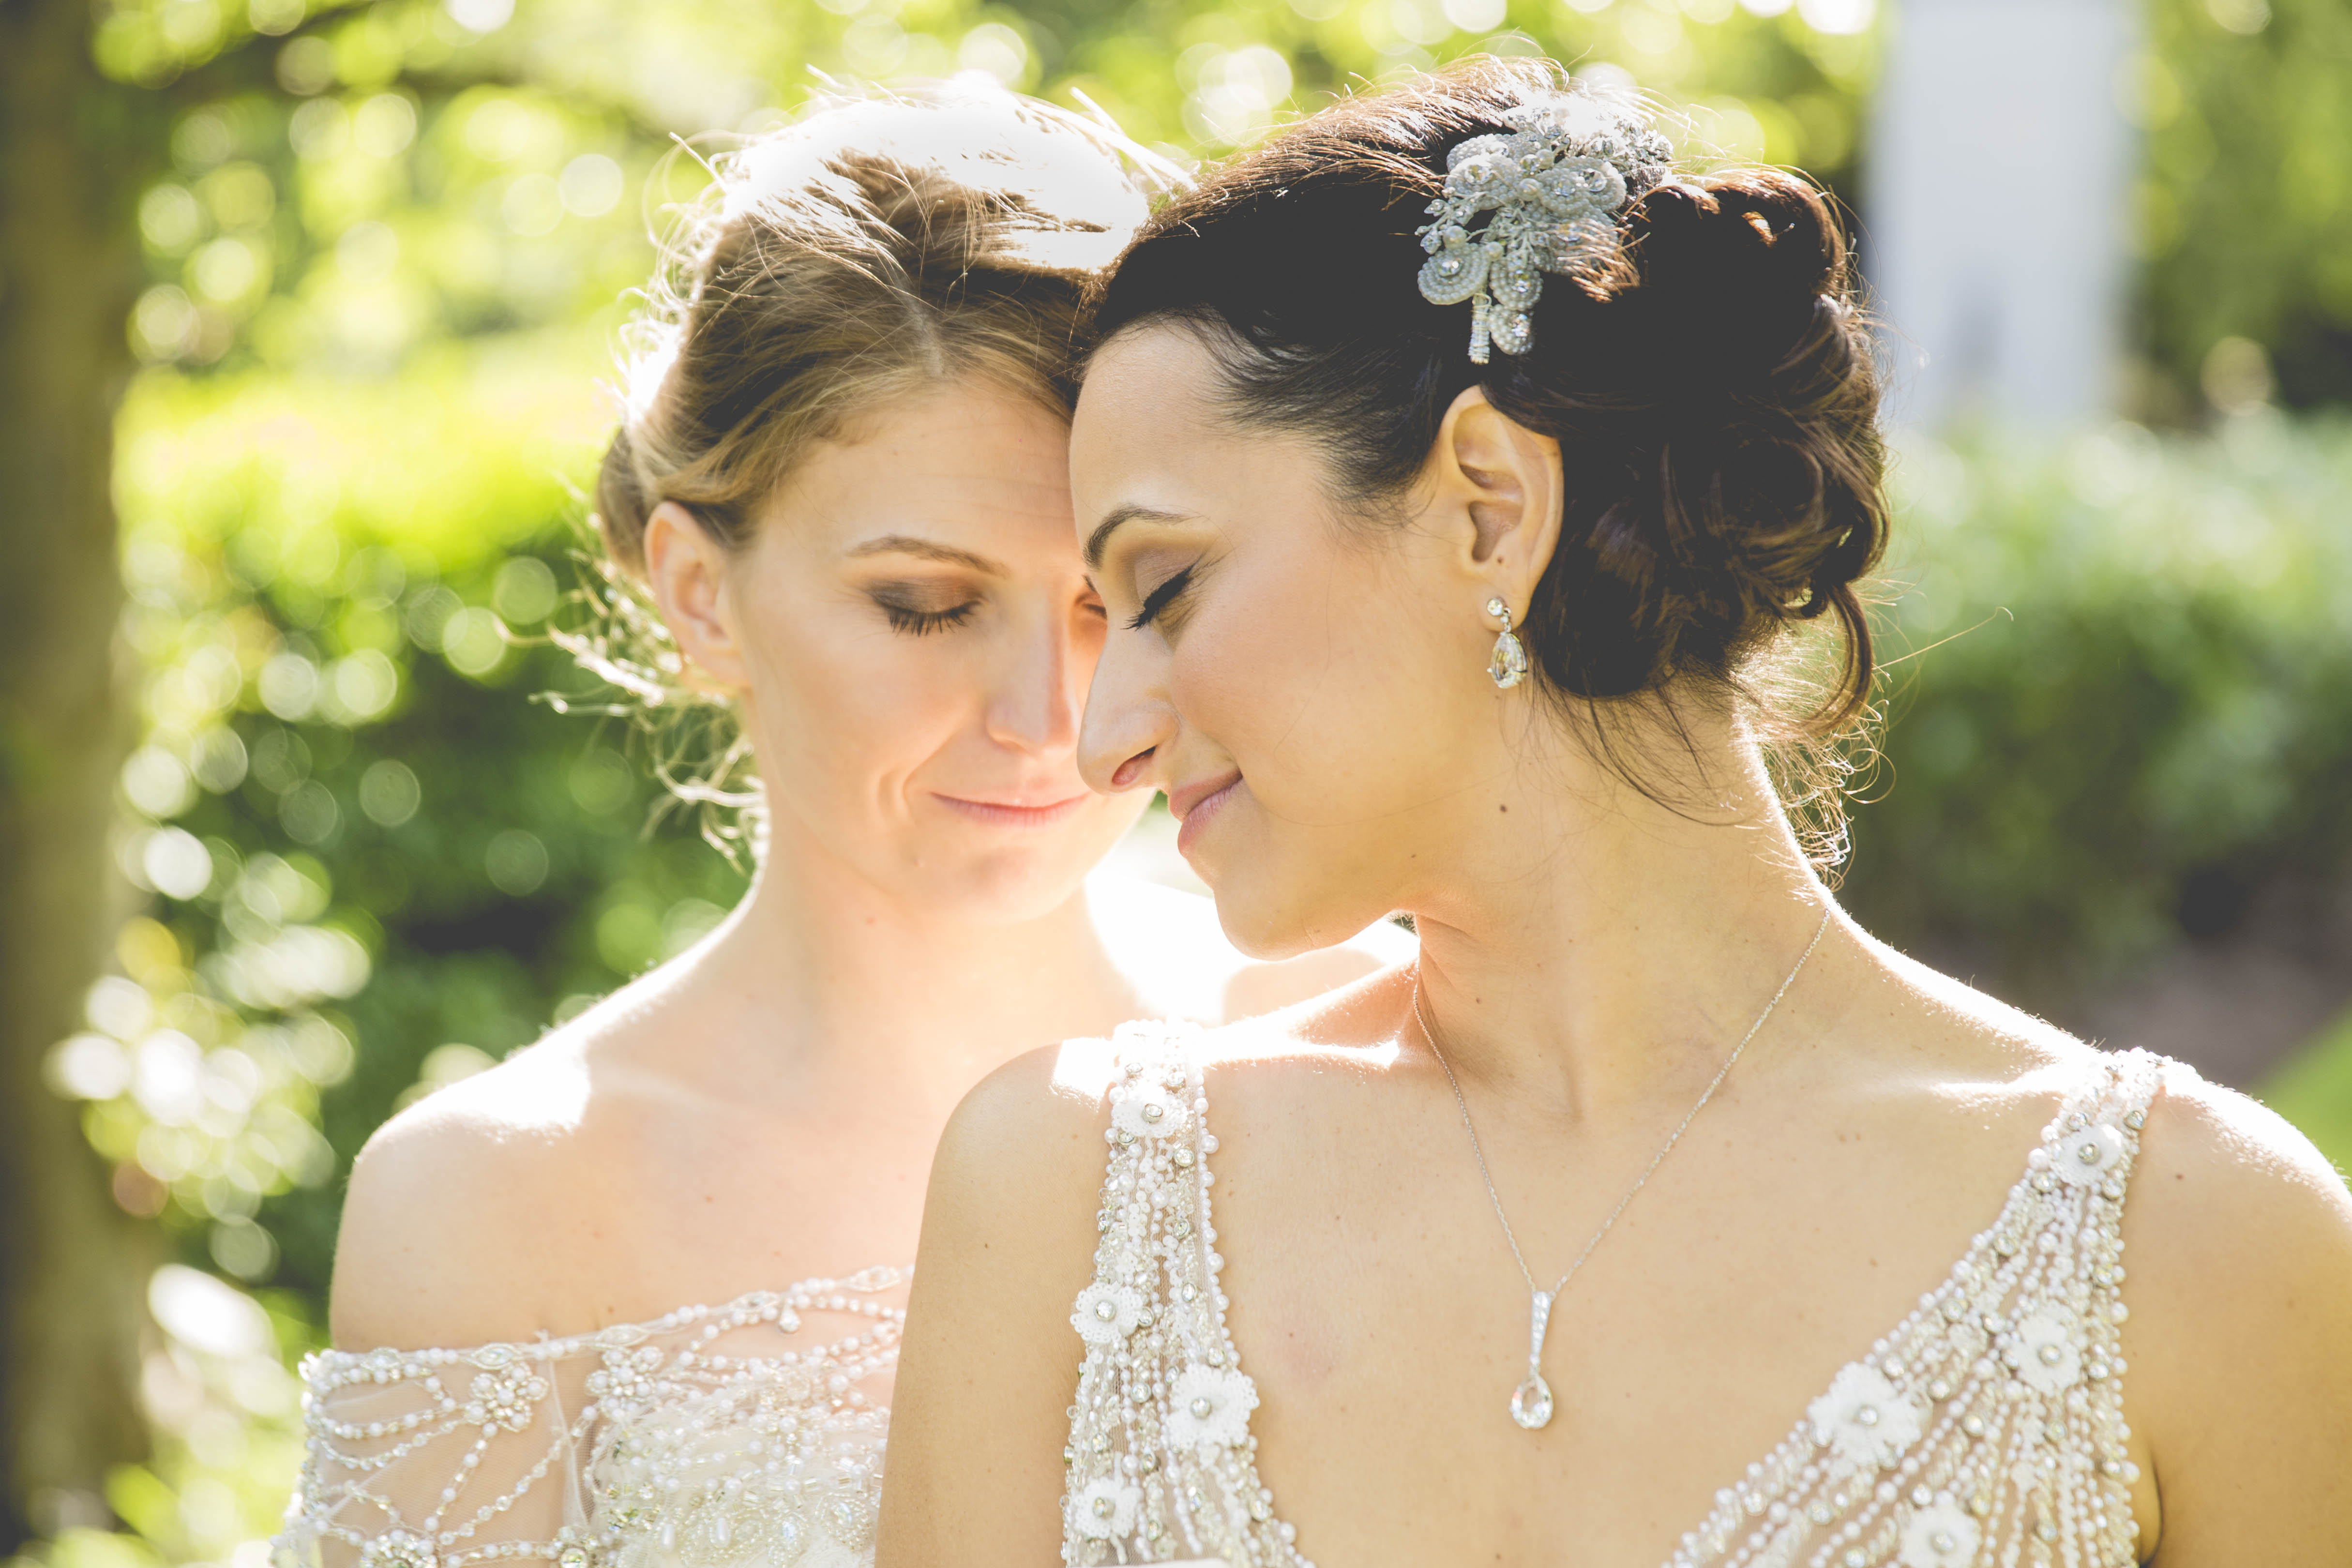 After A Proposal Jinx, Here's The Sweet Story Of This Lesbian Wedding